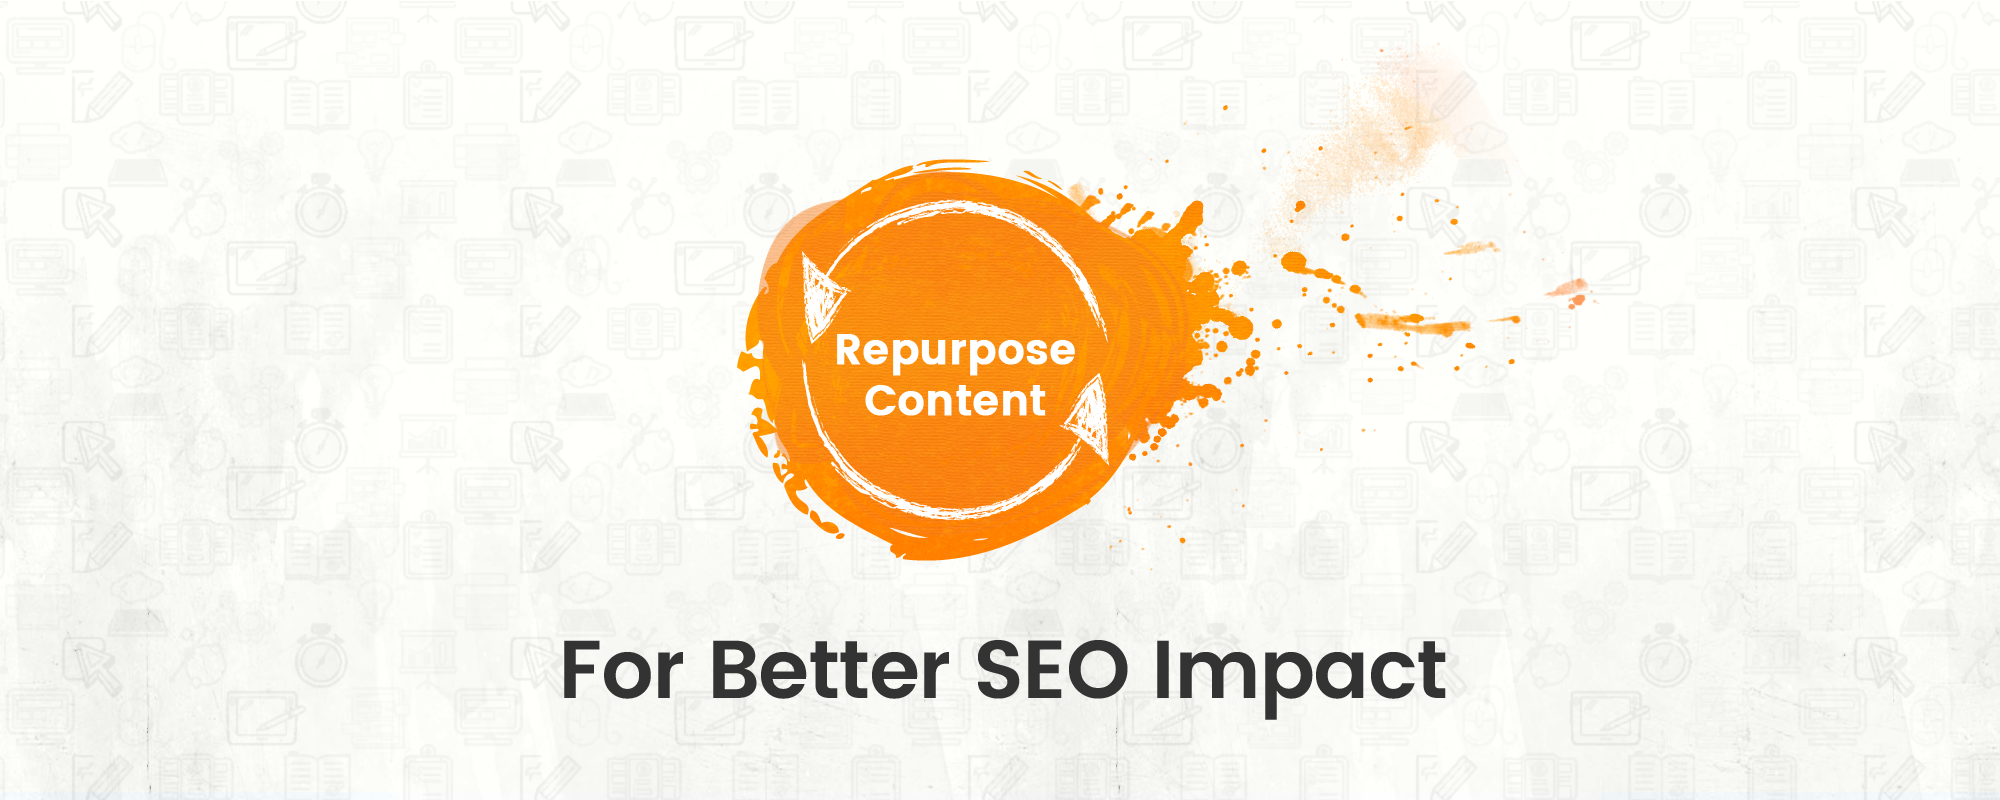 How to Repurpose Content to Maximize SEO Impact